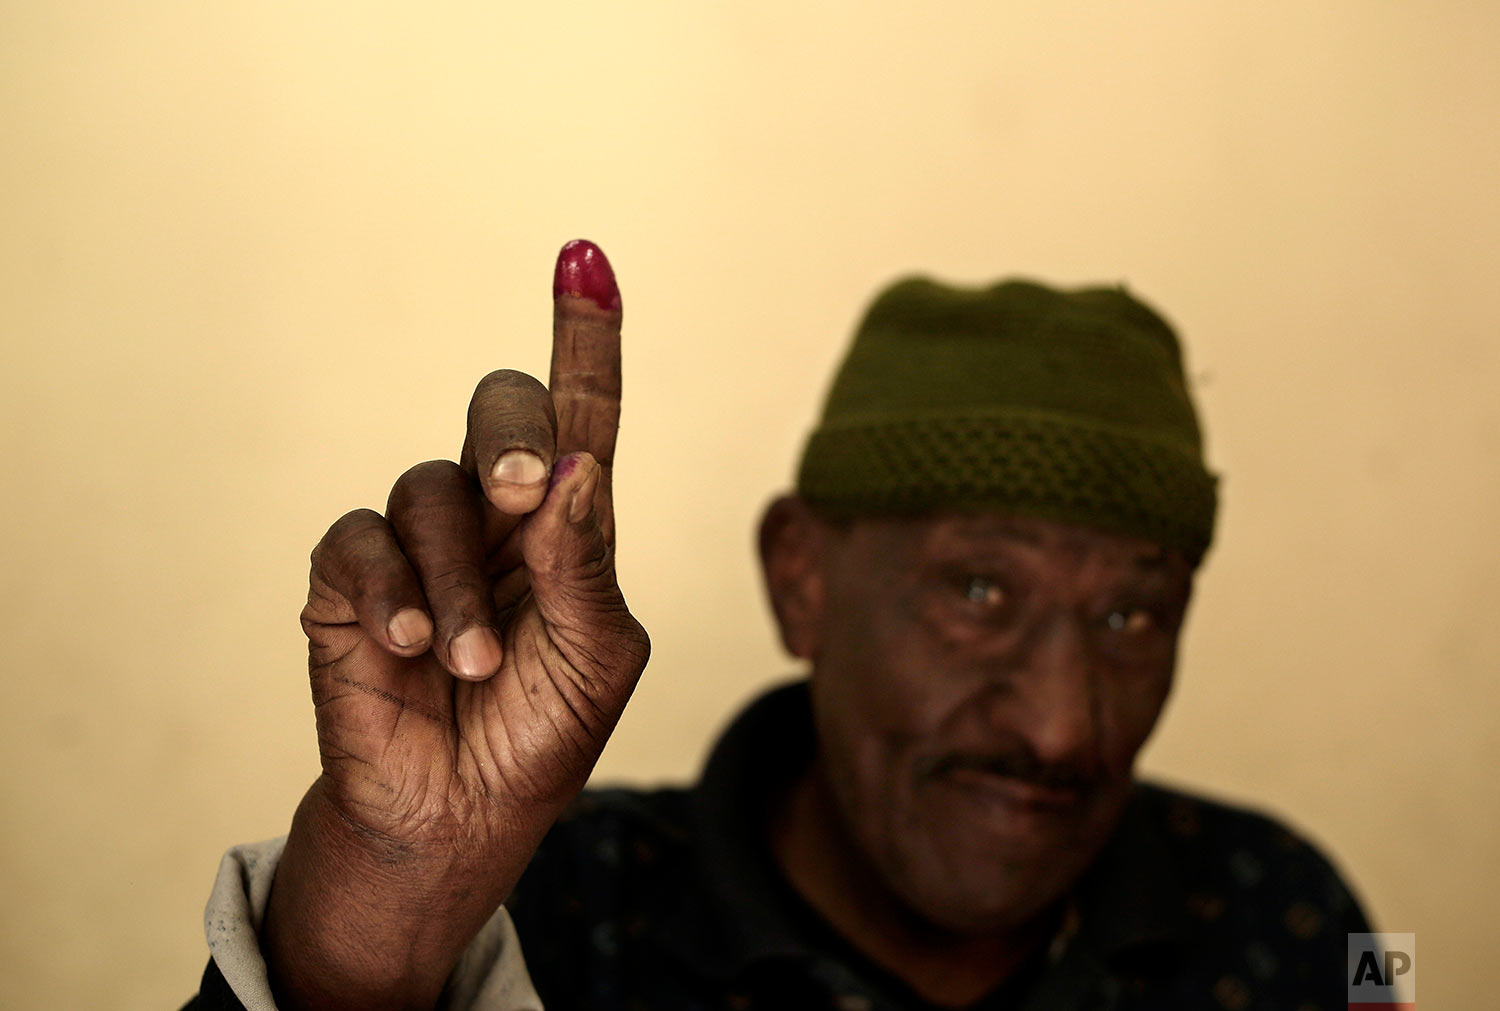 A man shows his inked finger after voting during the first day of the presidential election inside a polling station in Cairo, Egypt, Monday, March 26, 2018. Polls opened on Monday in Egypt's presidential election with the outcome — a second, four-year term for President Abdel-Fattah el-Sissi — a foregone conclusion, in what is seen by critics as a signal of the country's return to the authoritarian rule that prevailed since the 1950s. (AP Photo/Nariman El-Mofty)